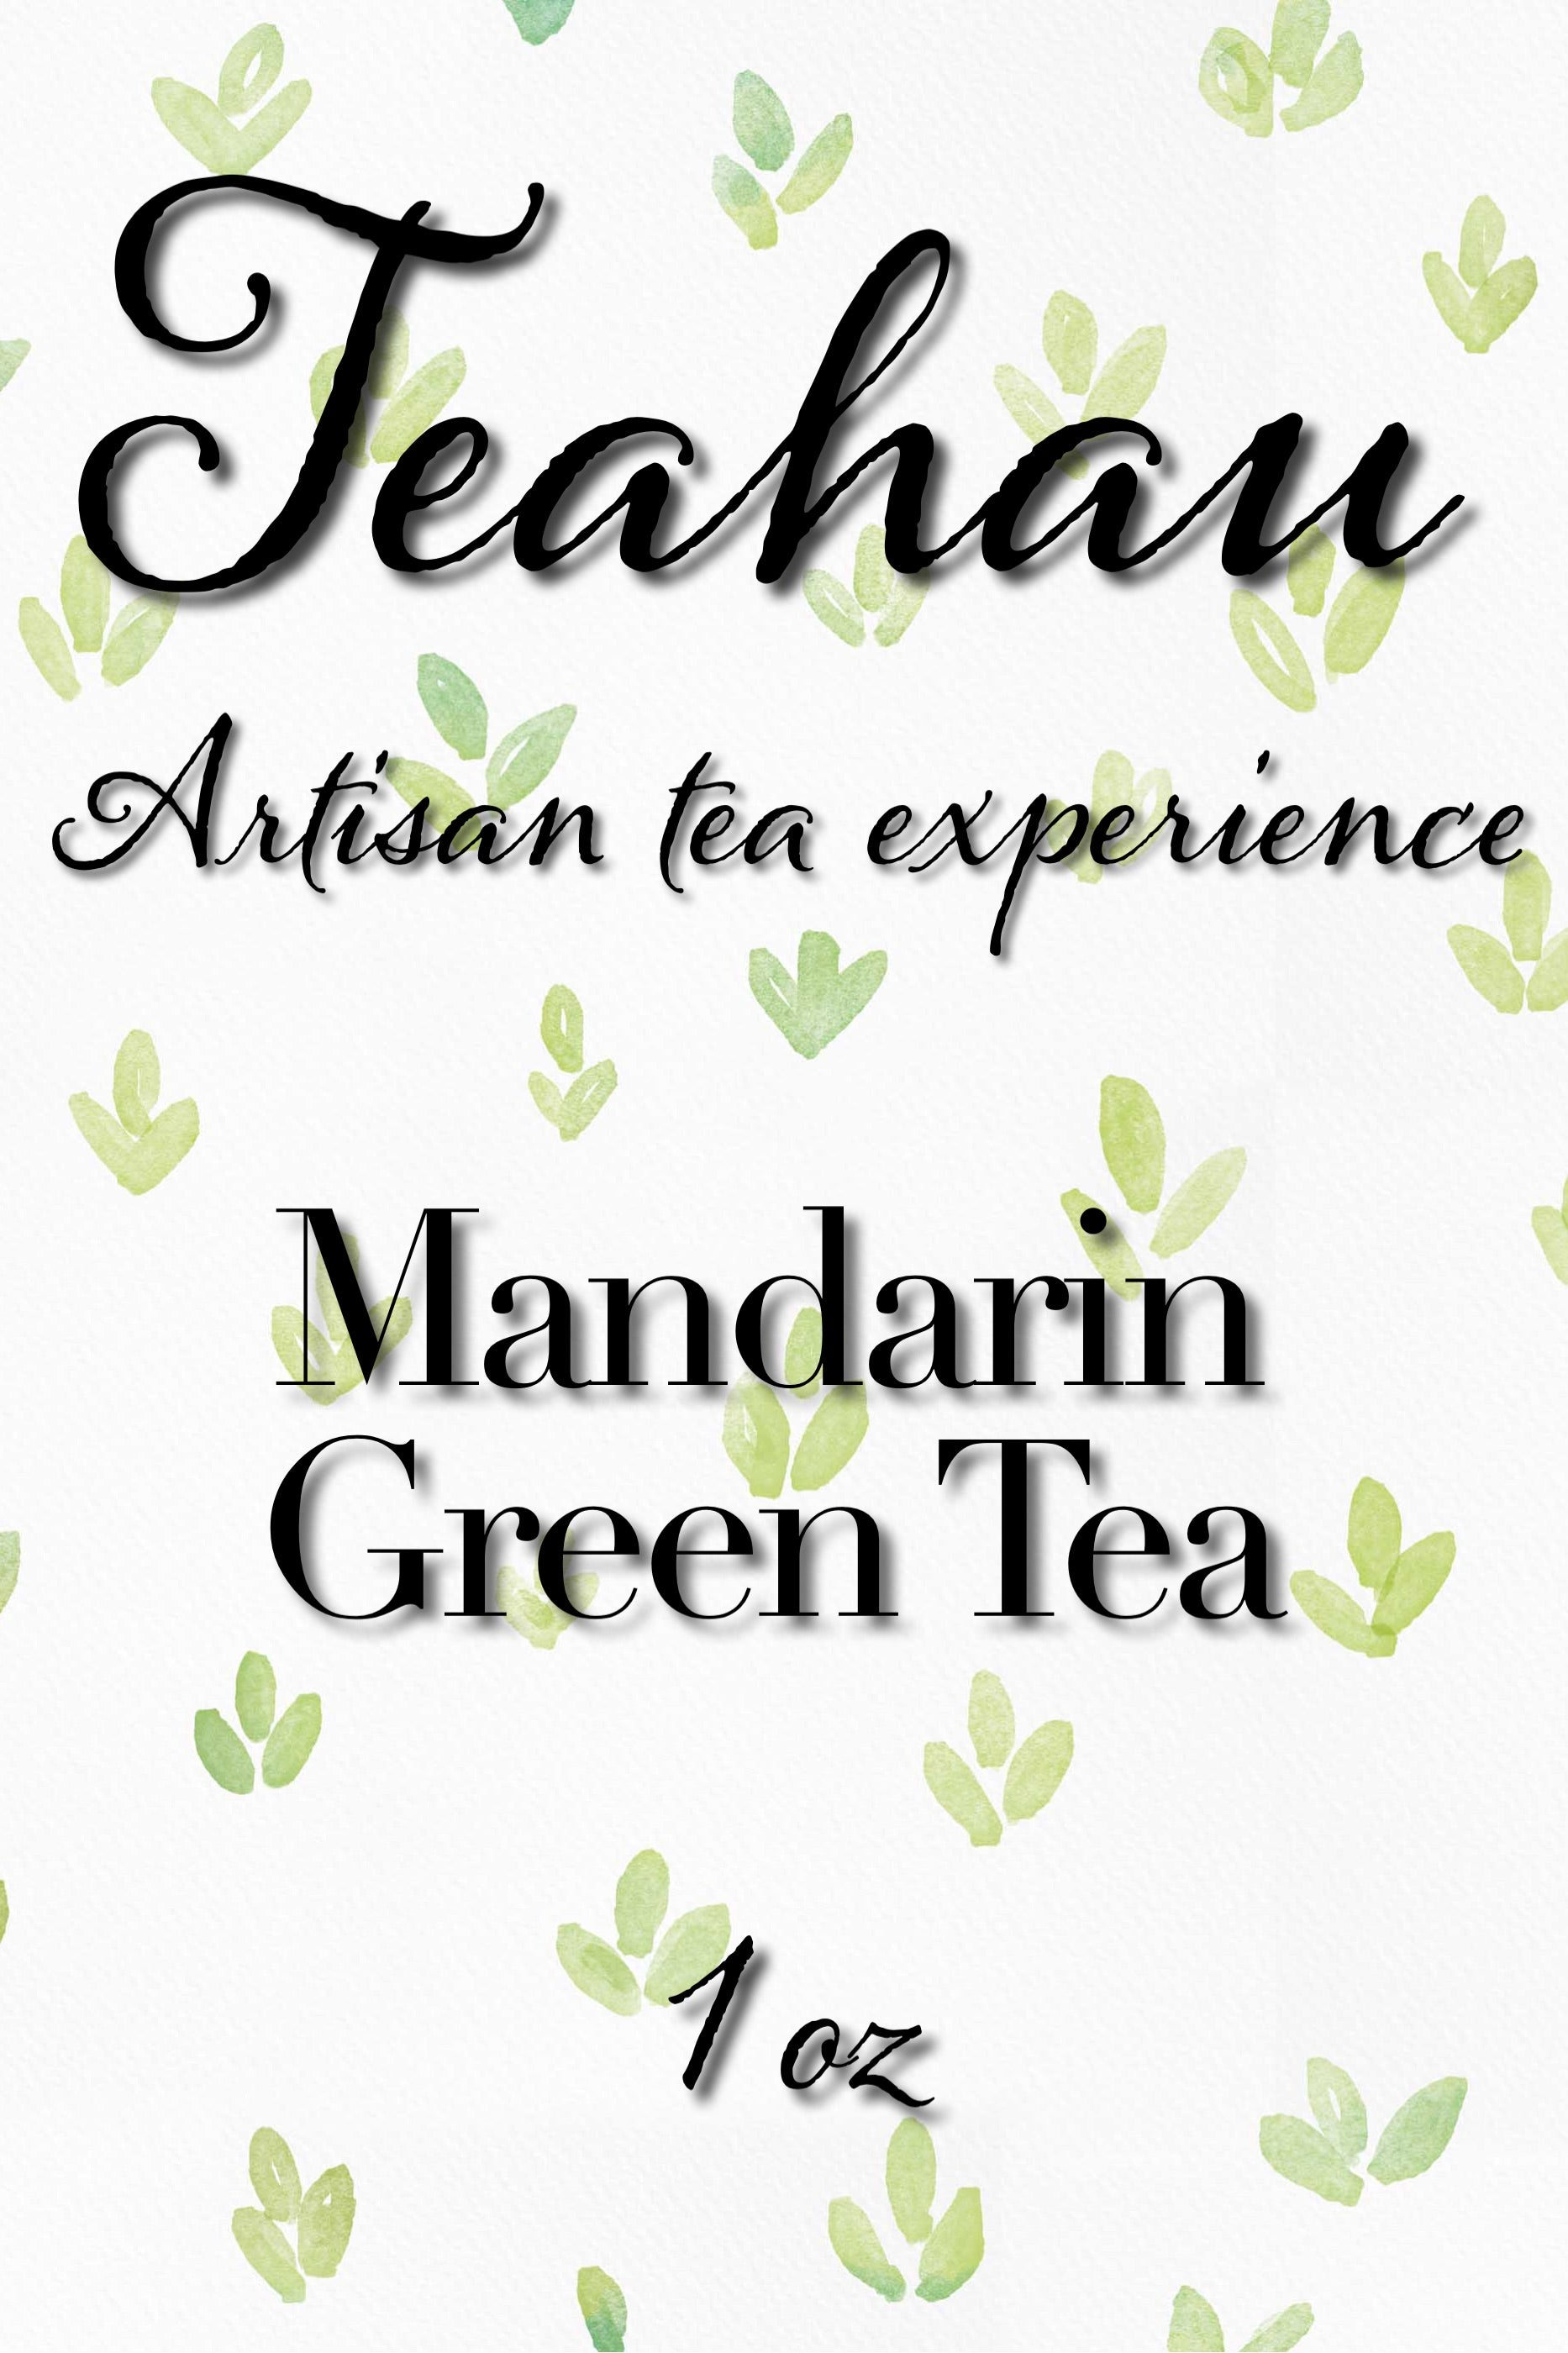 Mandarin Green Tea 1 oz